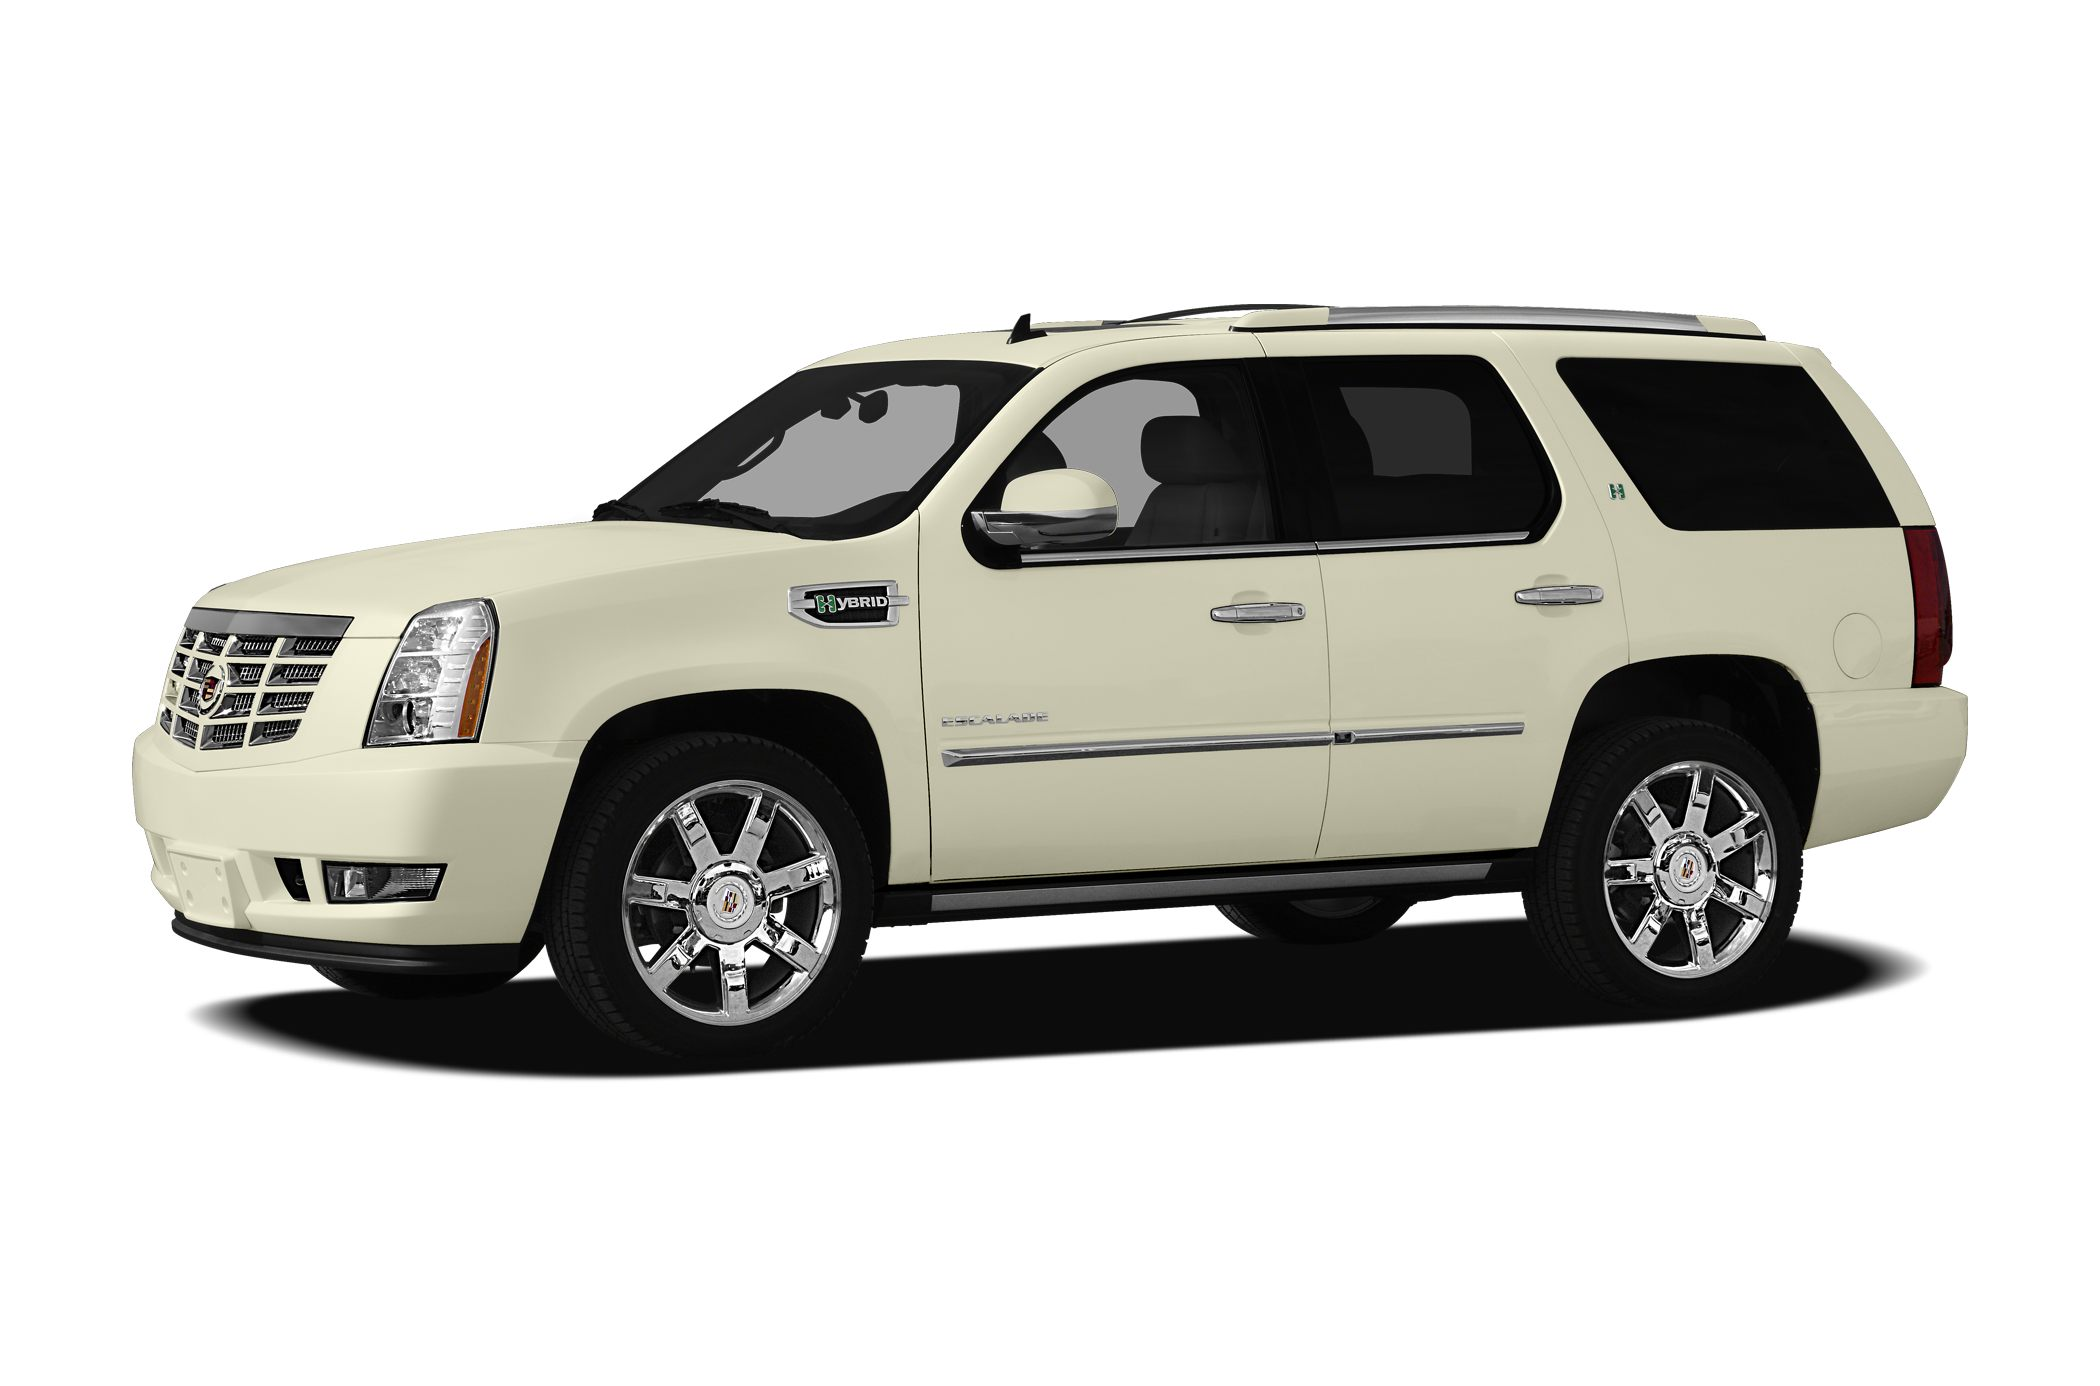 vehicle vancouver escalade richmond in bc sale photo for suv cadillac vehicles vehiclesearchresults